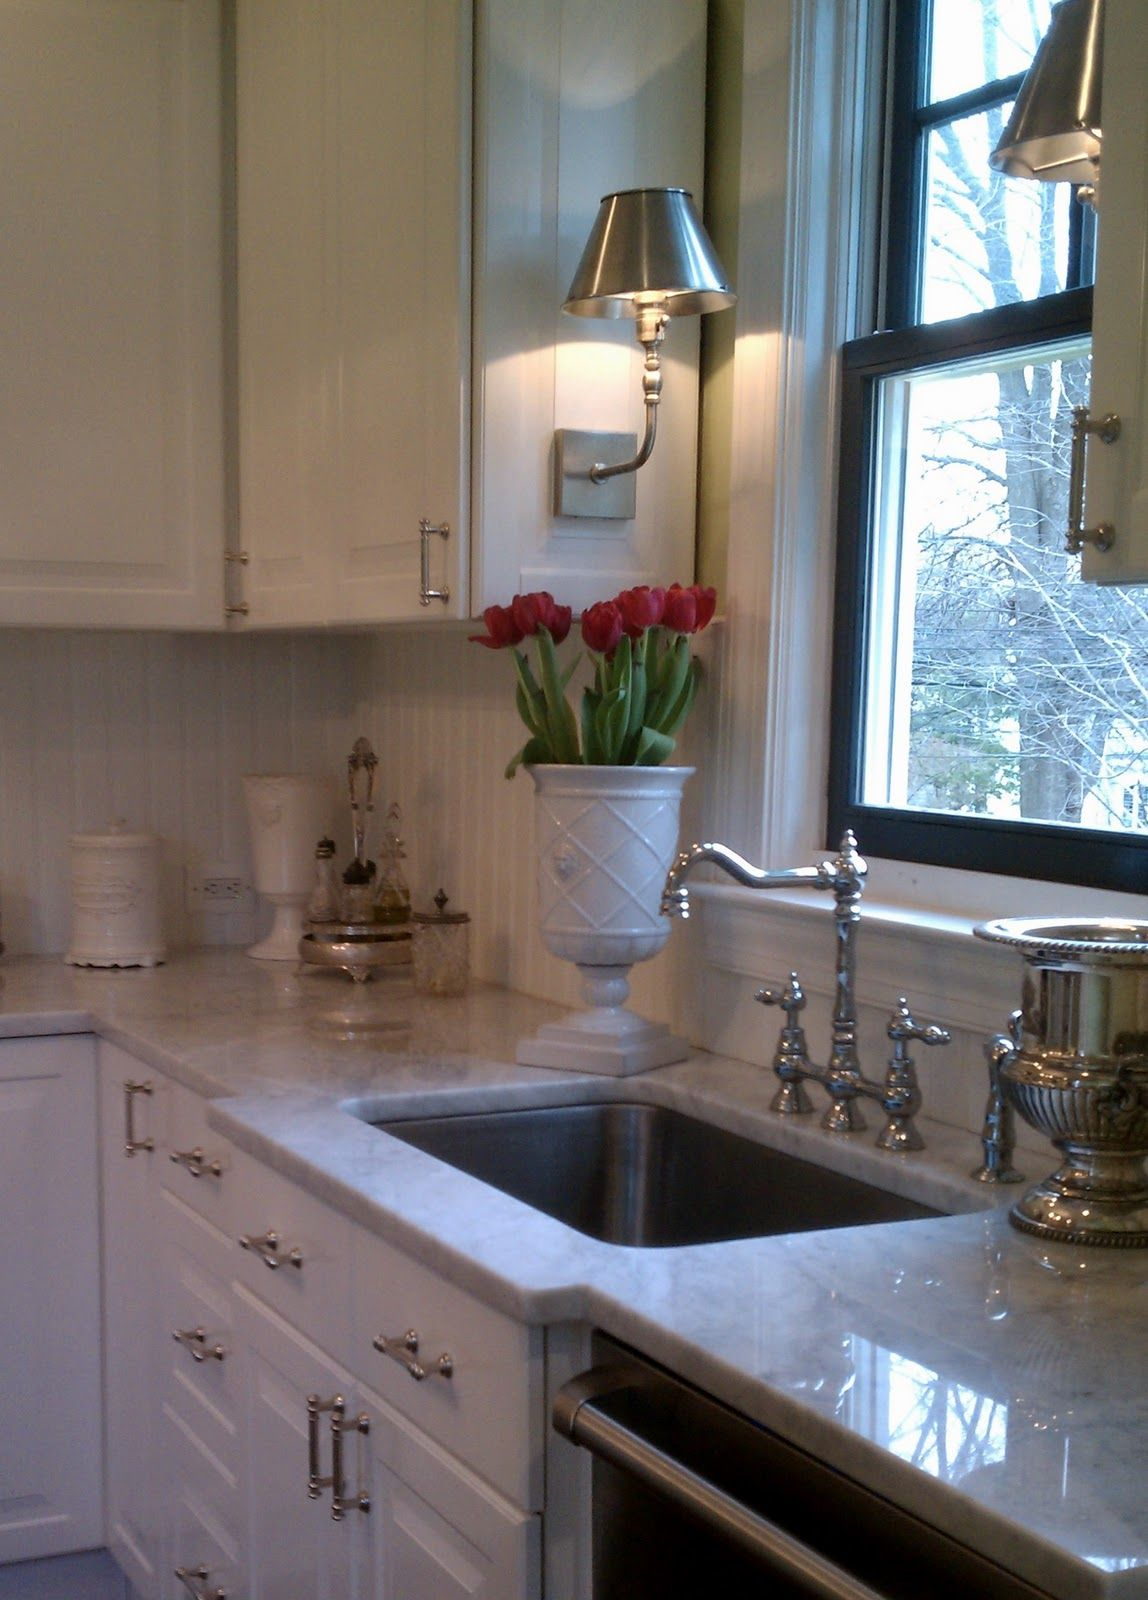 A kitchen layout exactly like minelove those sconces over the sink